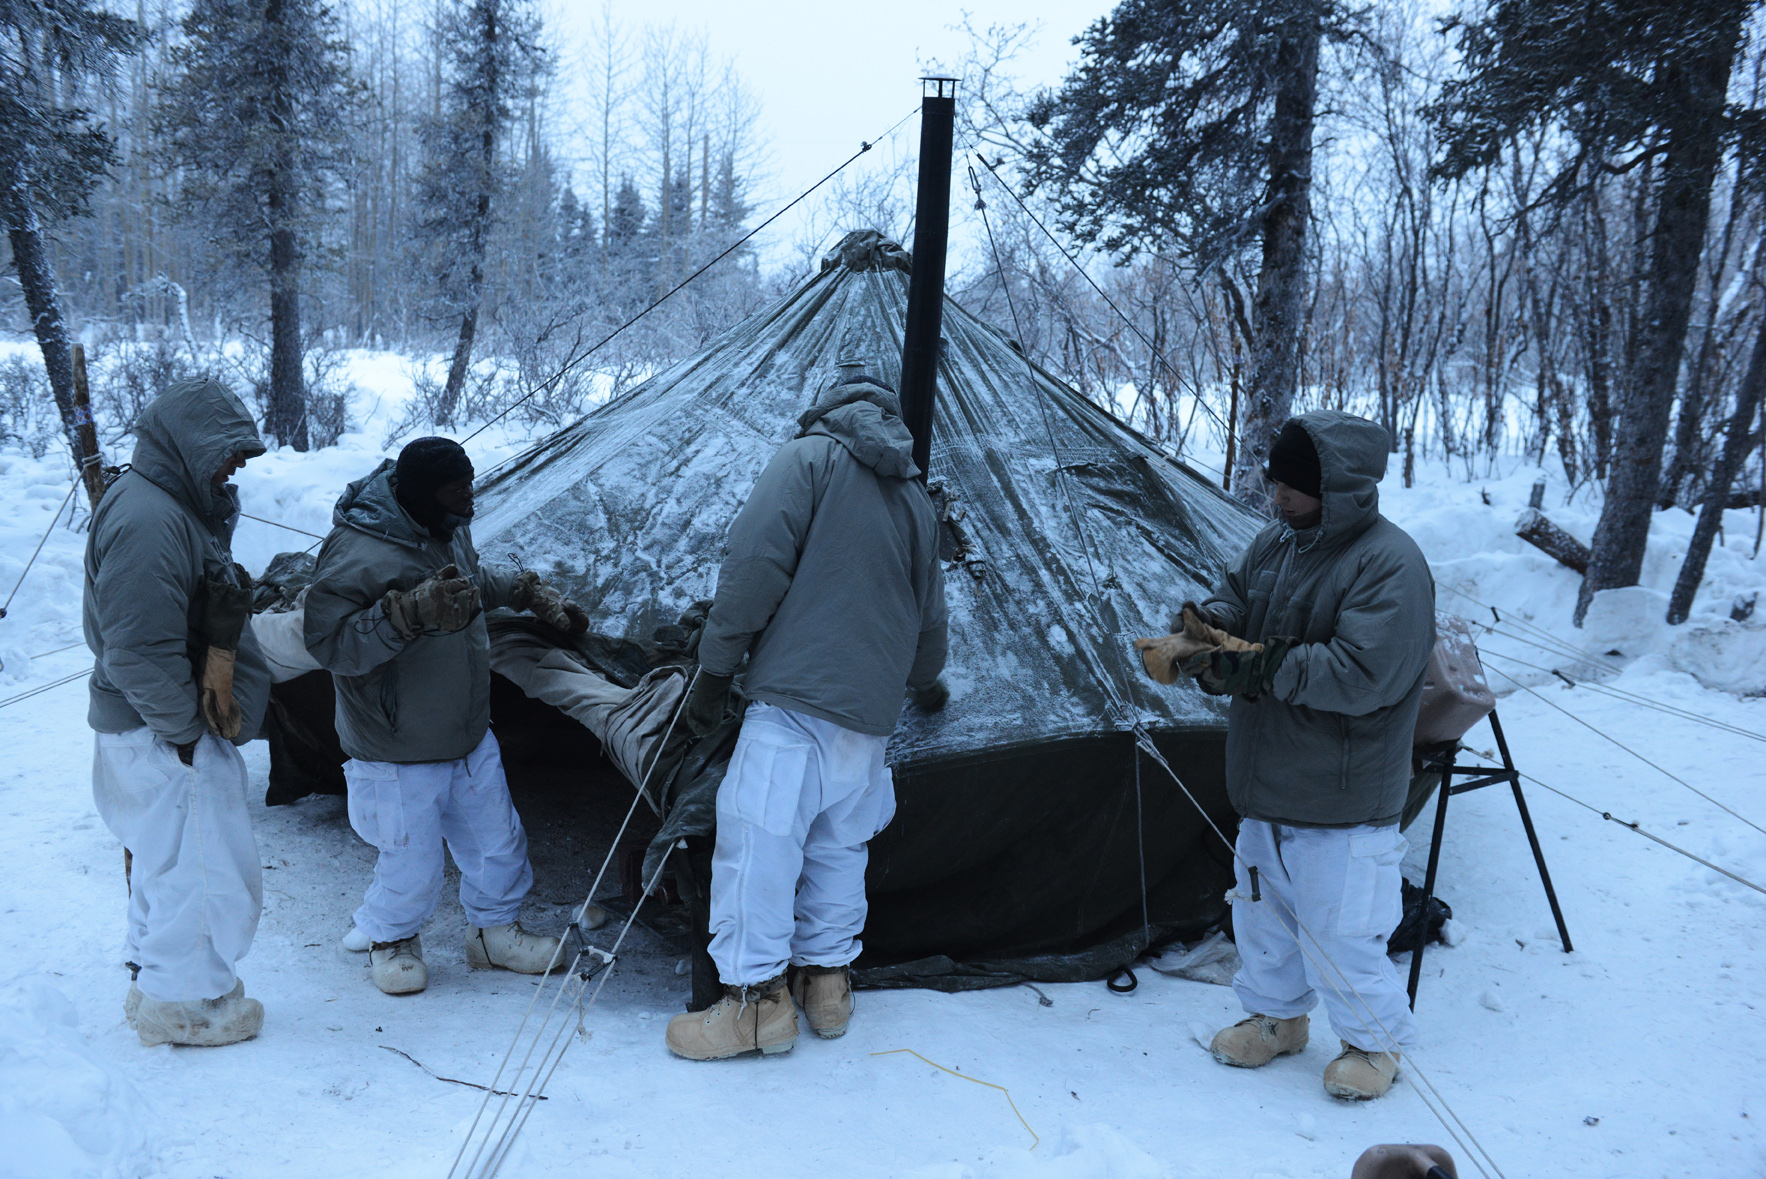 Shelter from extreme cold temperatures